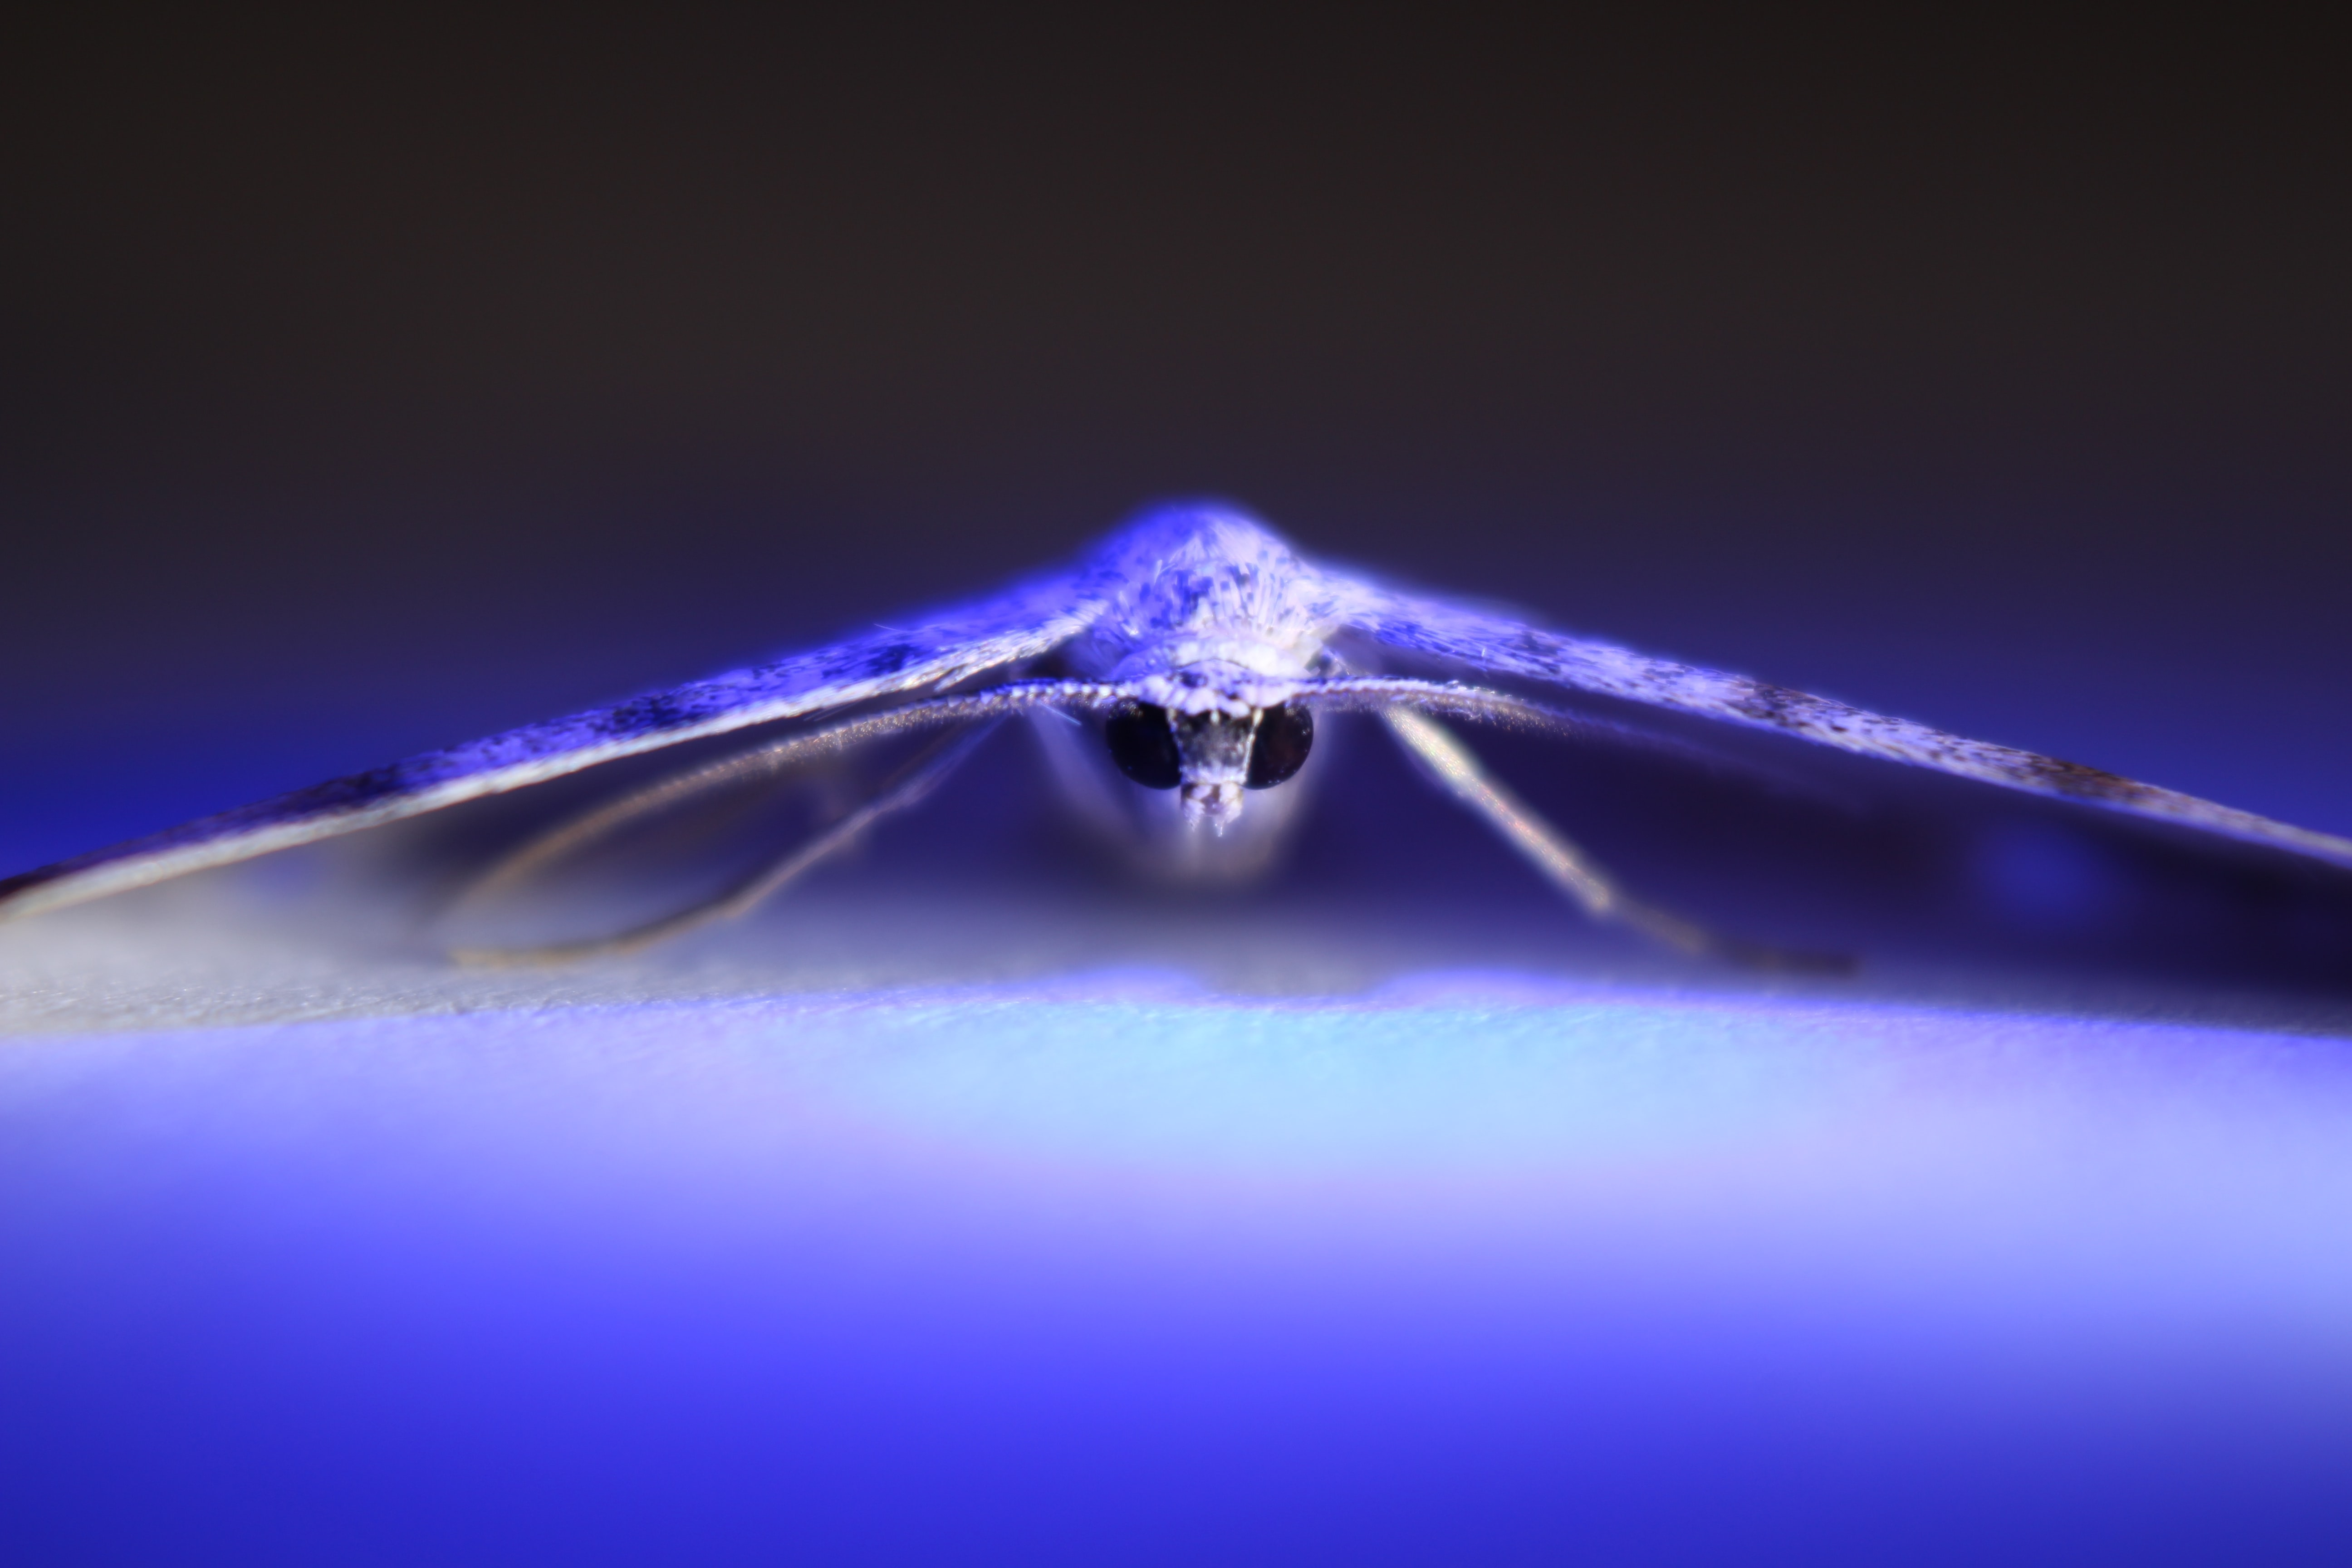 macro photography of white insect